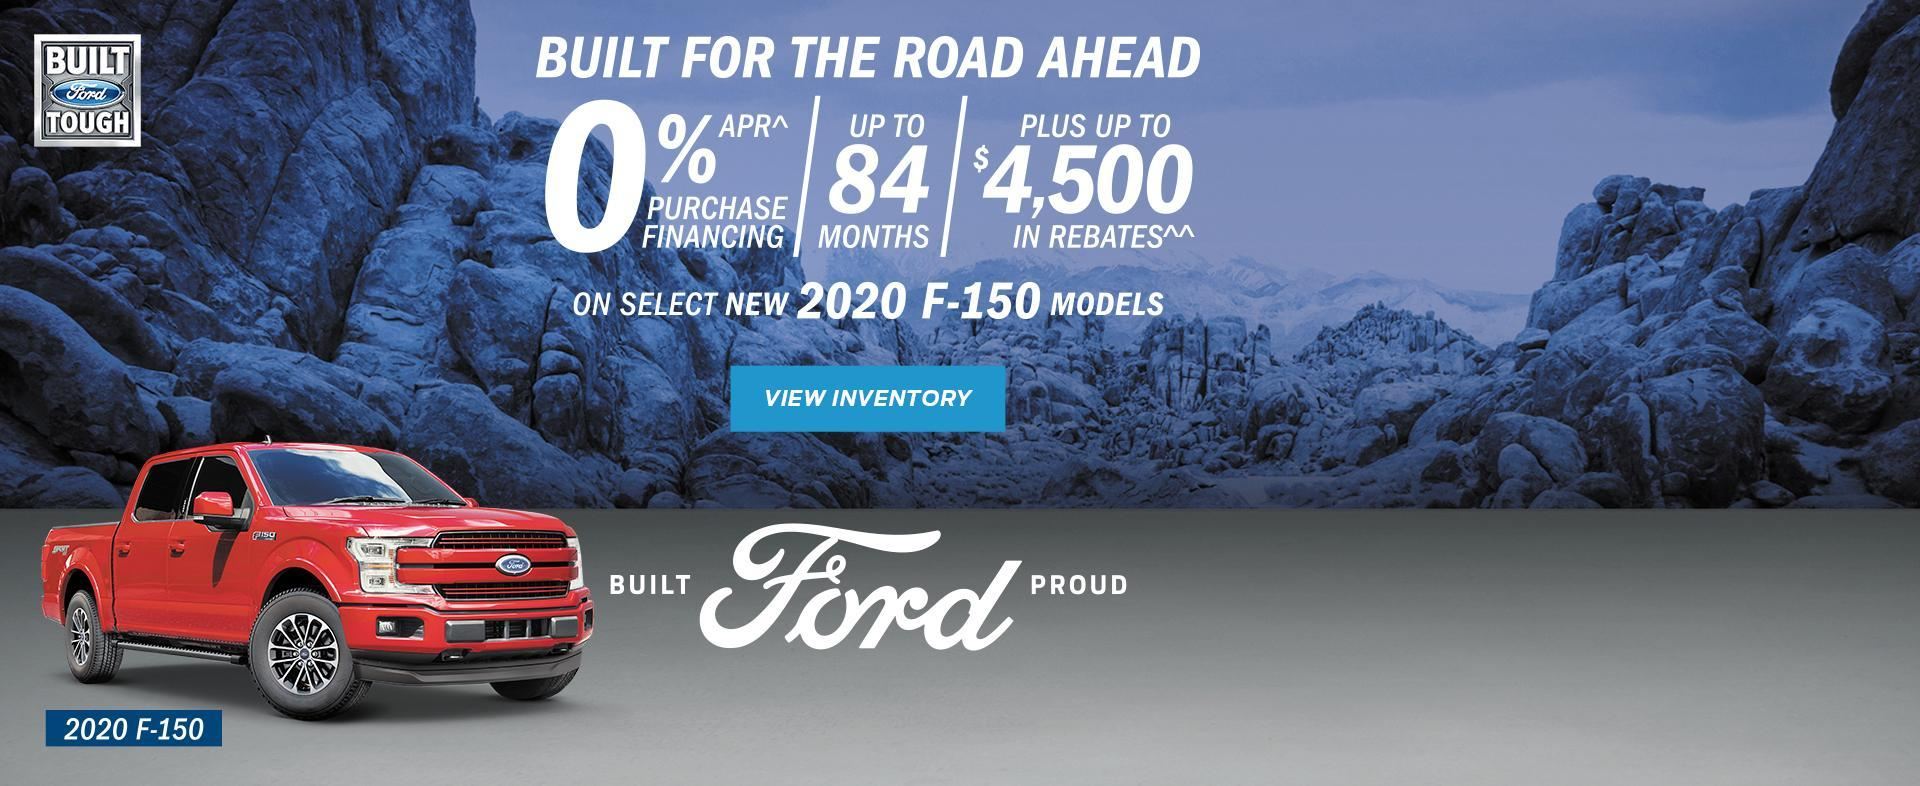 New 2020 Red F-150 Build for the road ahead